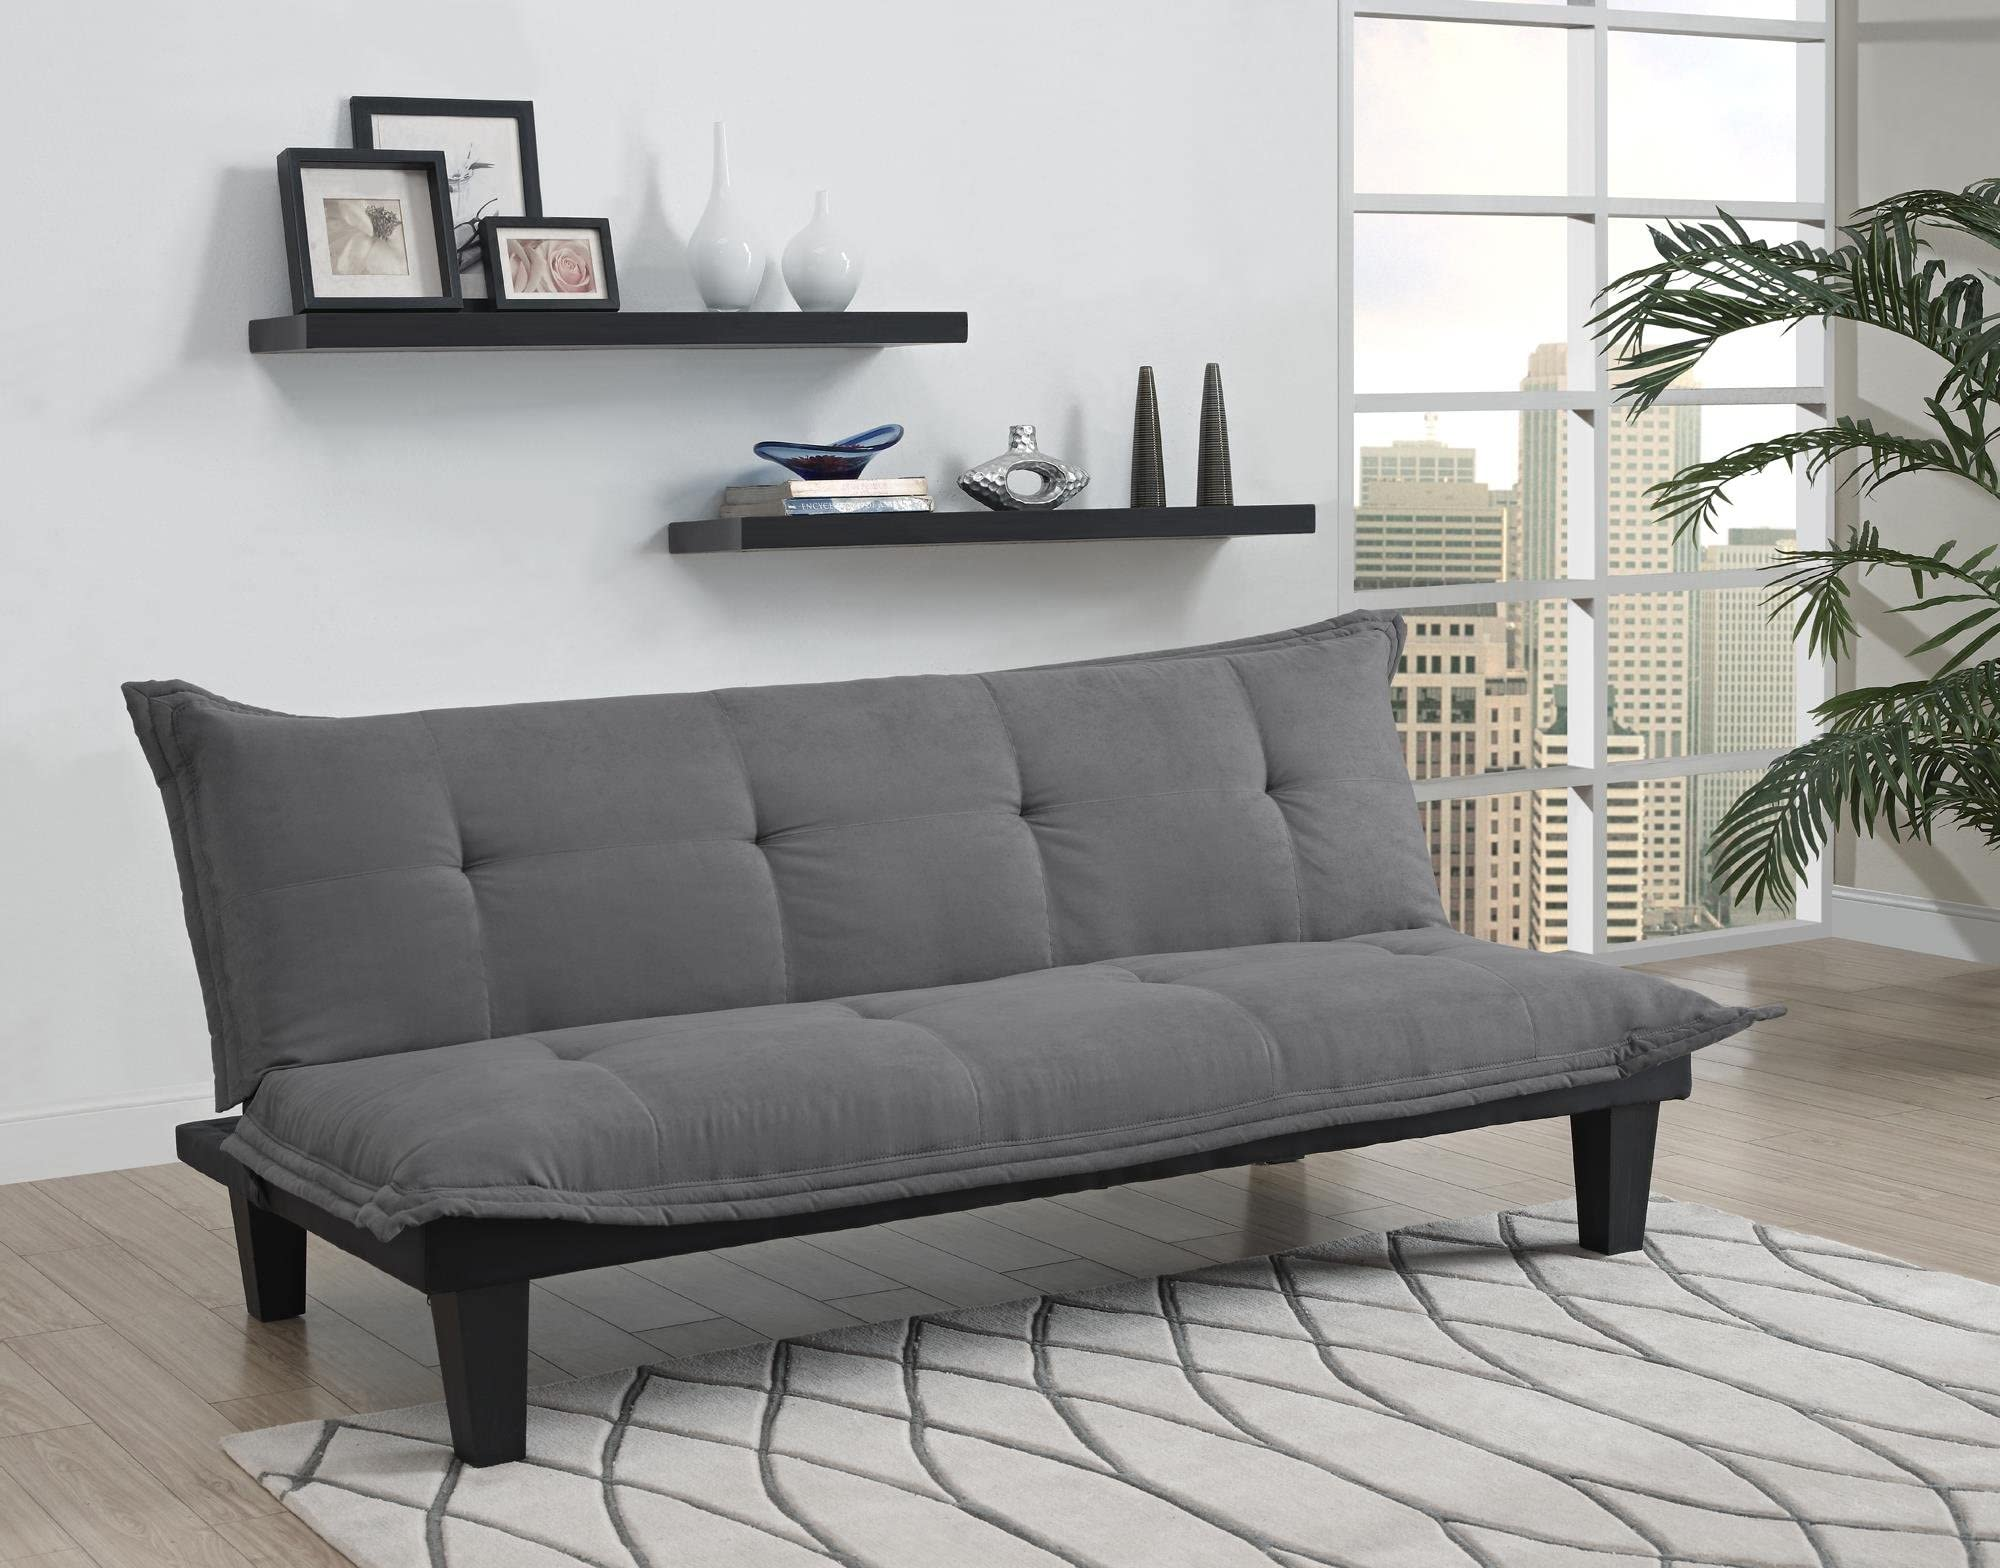 dhp lodge convertible futon couch bed with microfiber upholstery and wood legs charcoal futons   amazon    rh   amazon